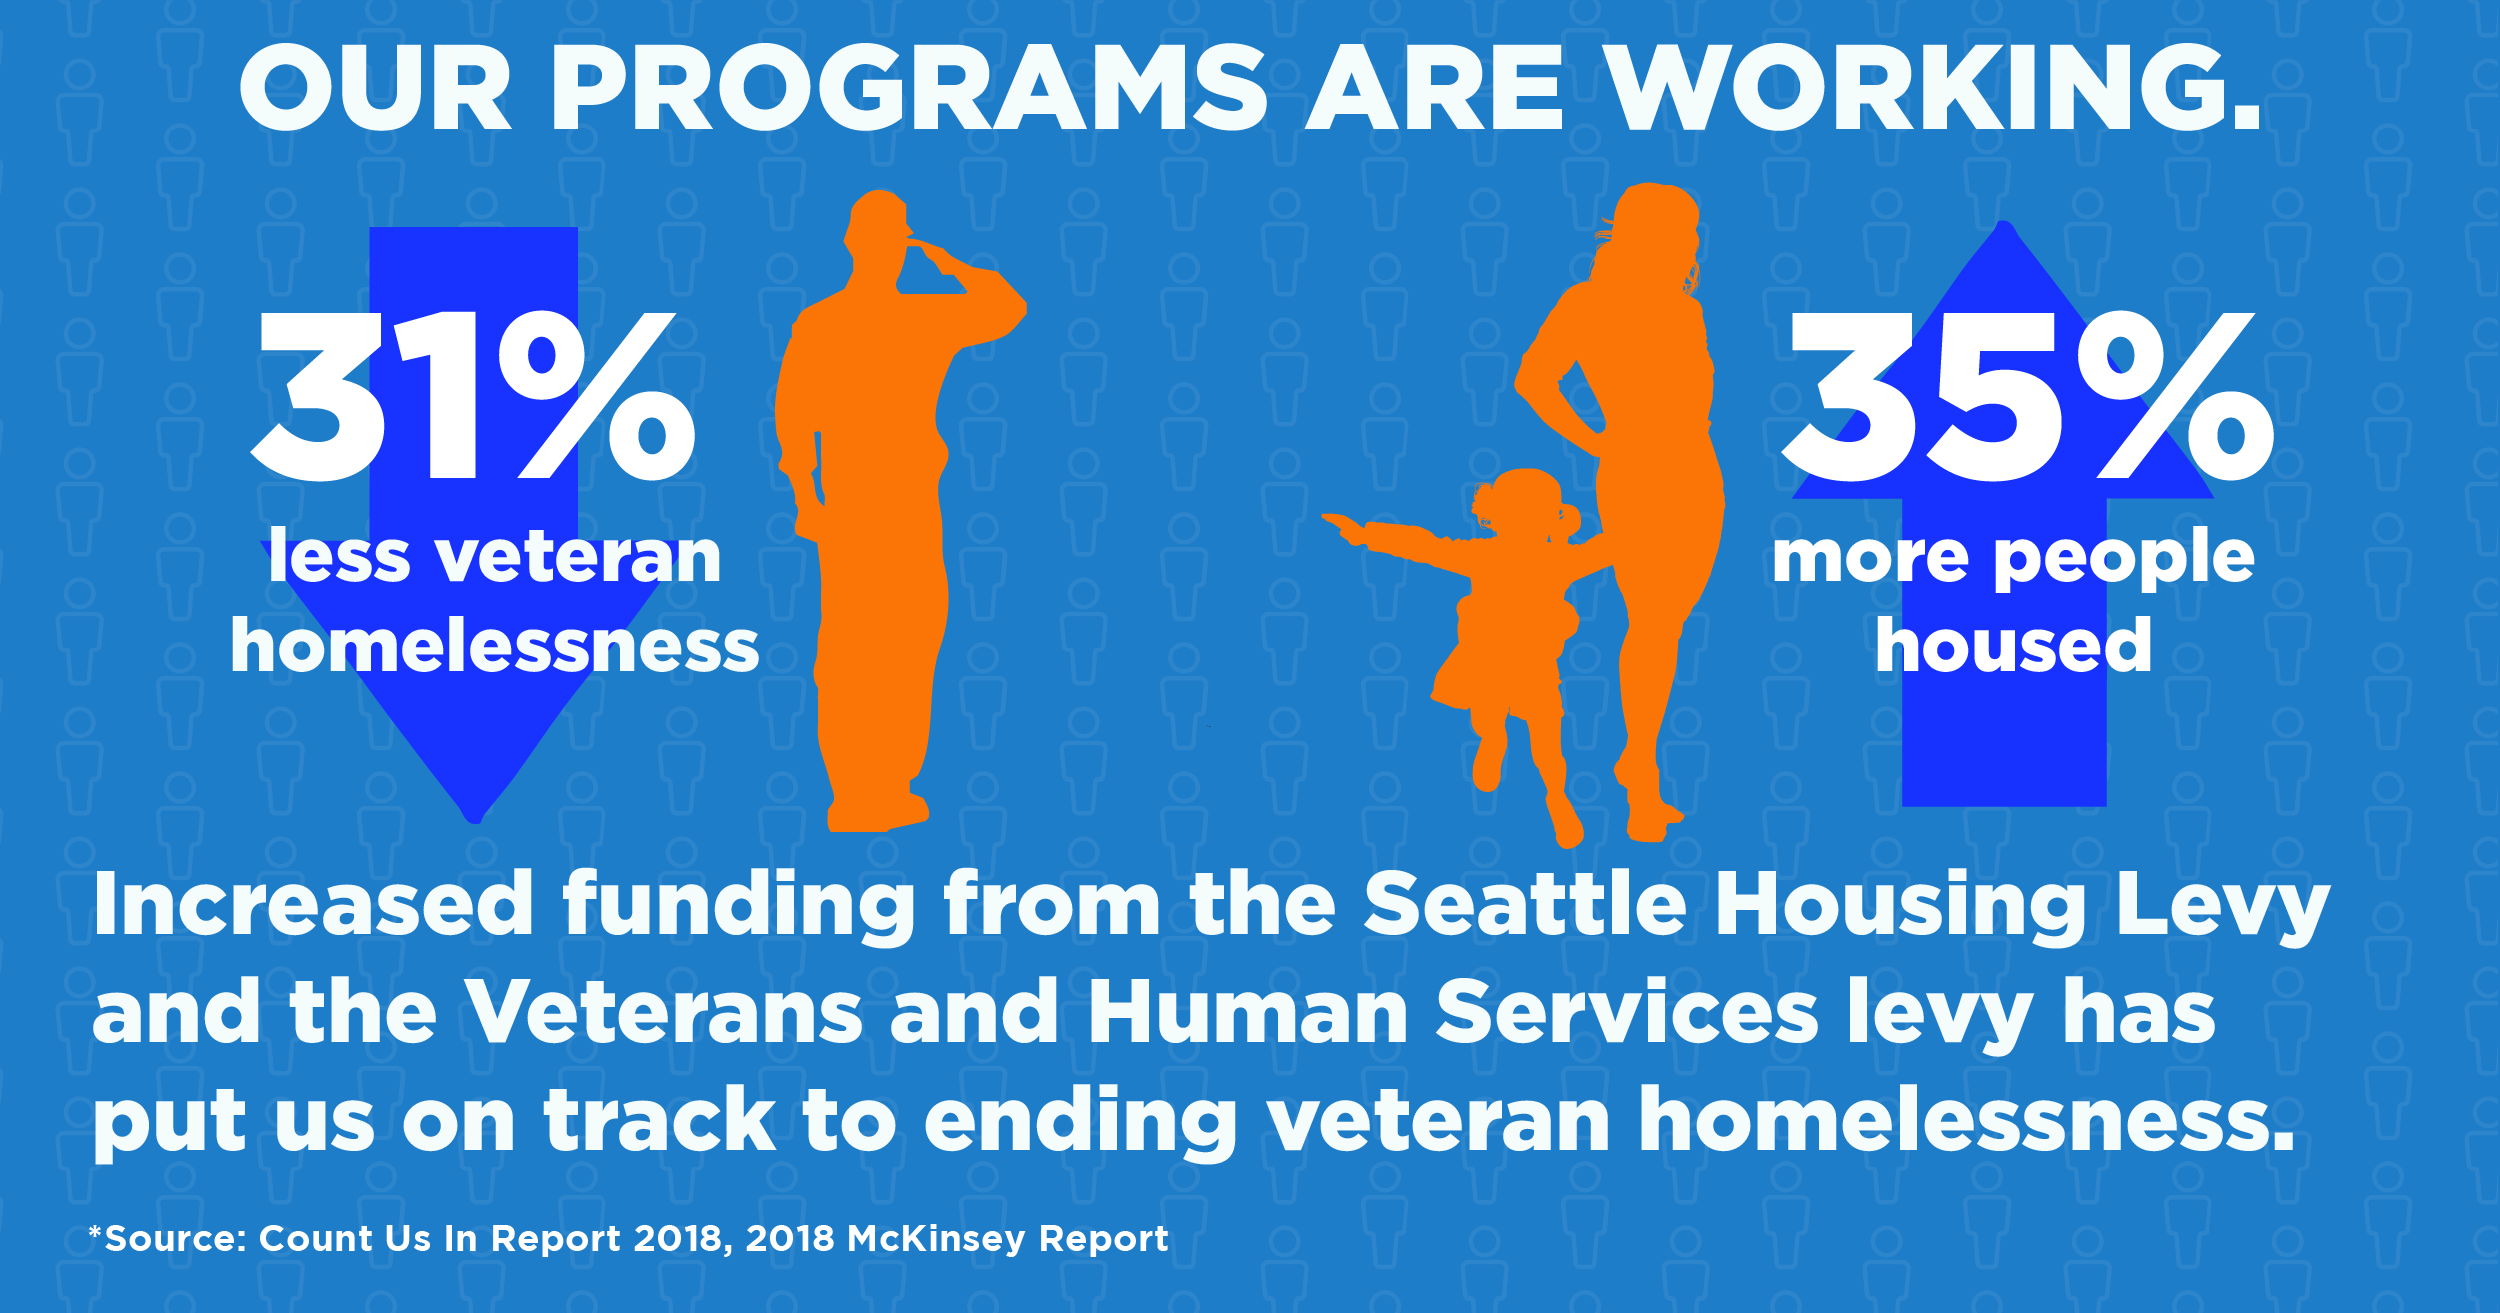 Veterans Homelessness is down 31% and 35% more people are being housed